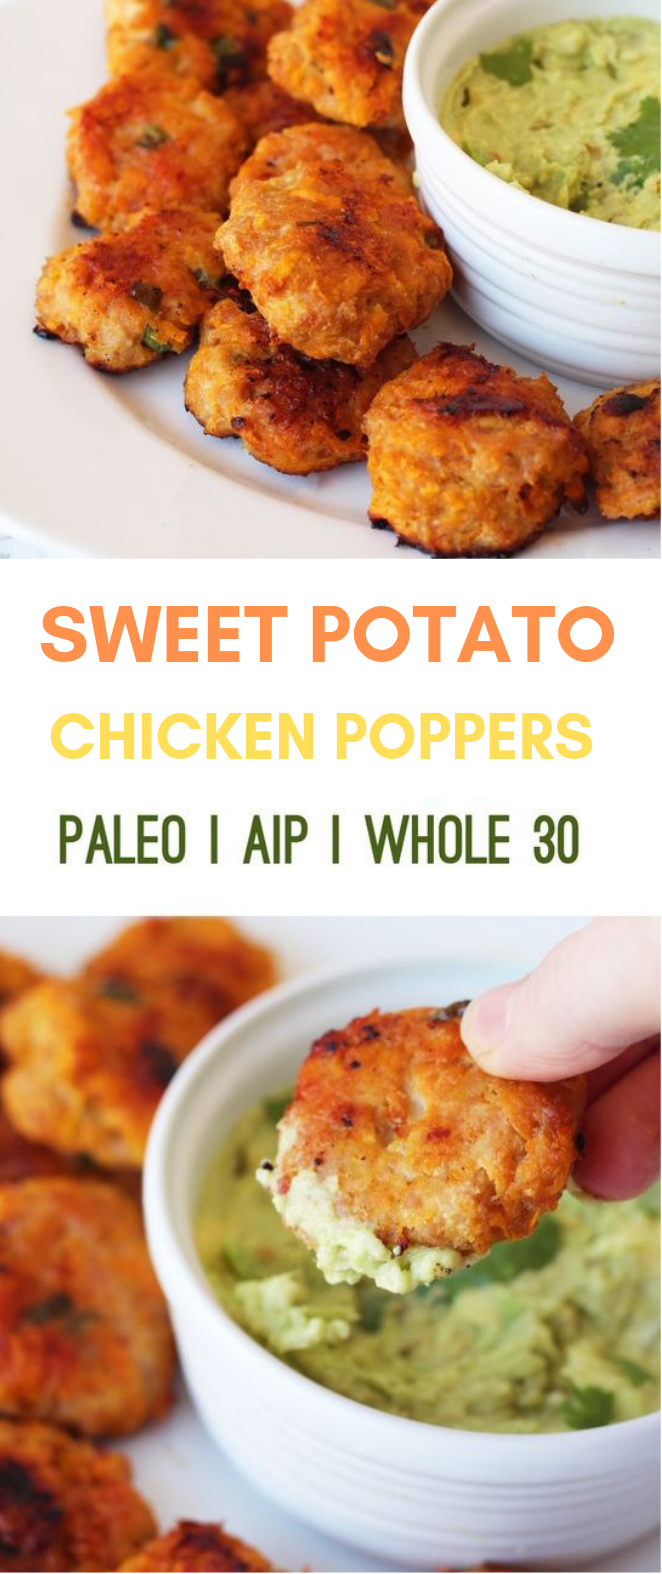 Sweet Potato Chicken Poppers #diet #healthyrecipe